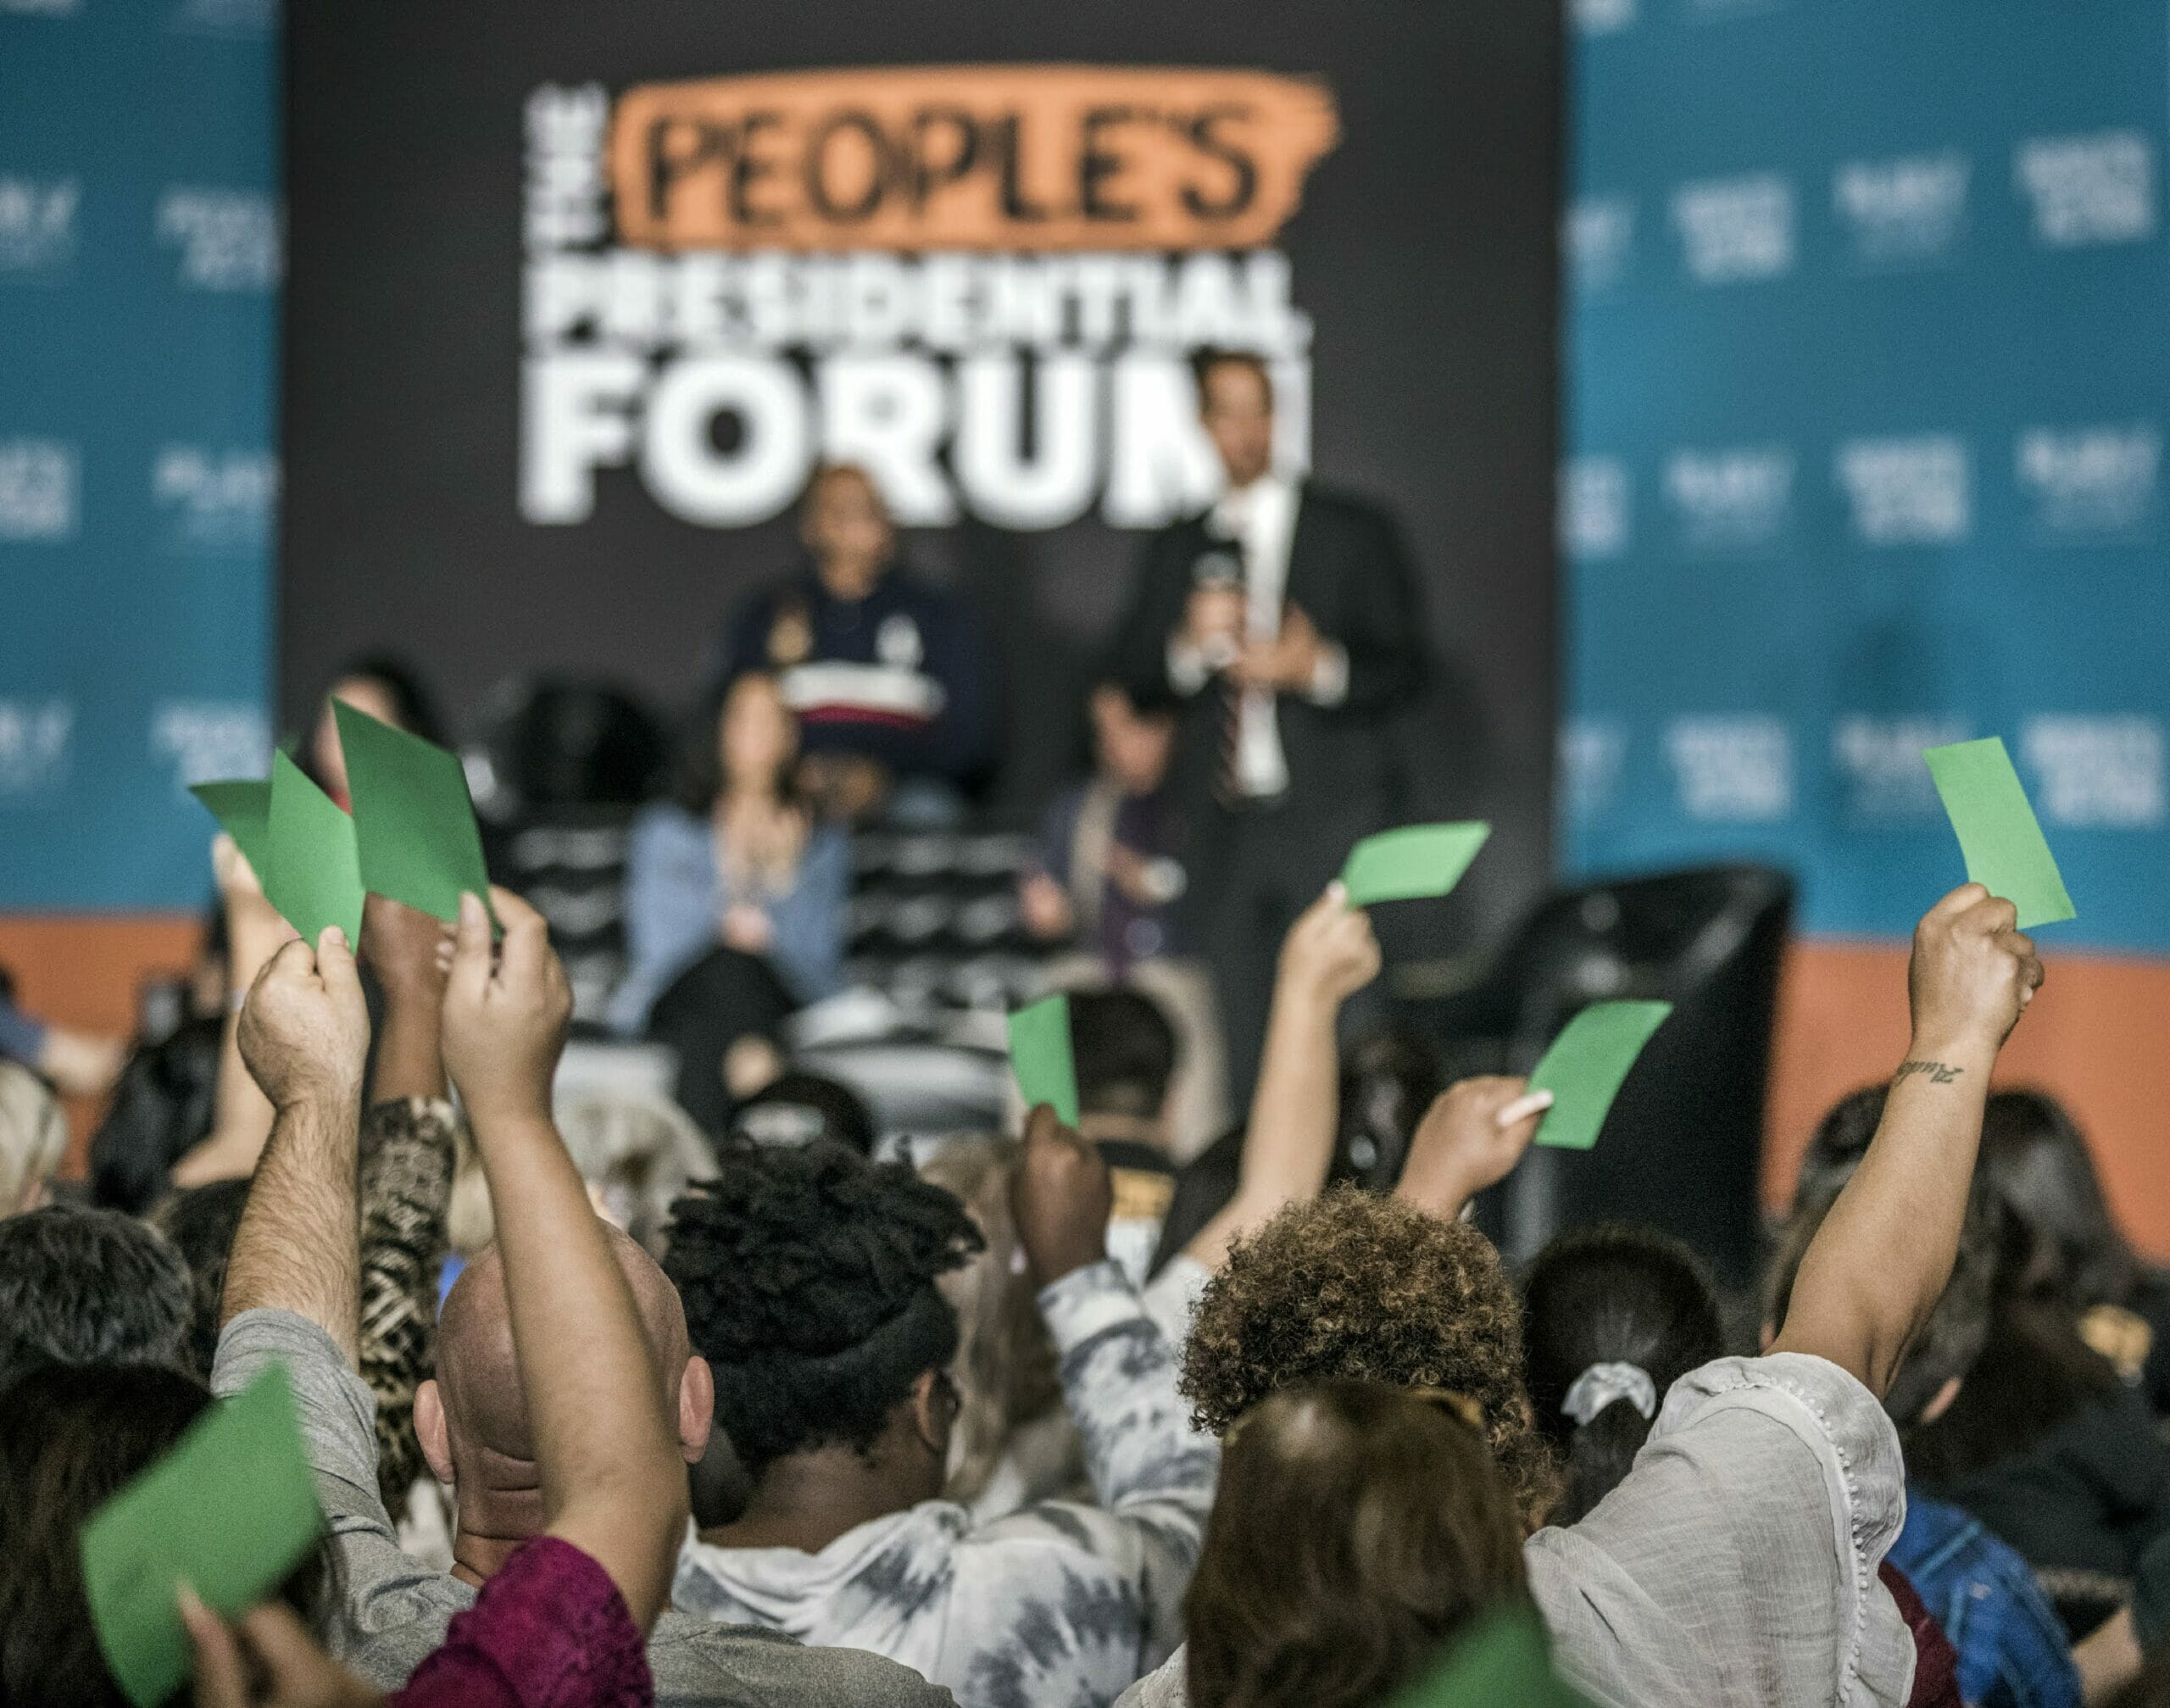 People wave green cards at a presidential forum